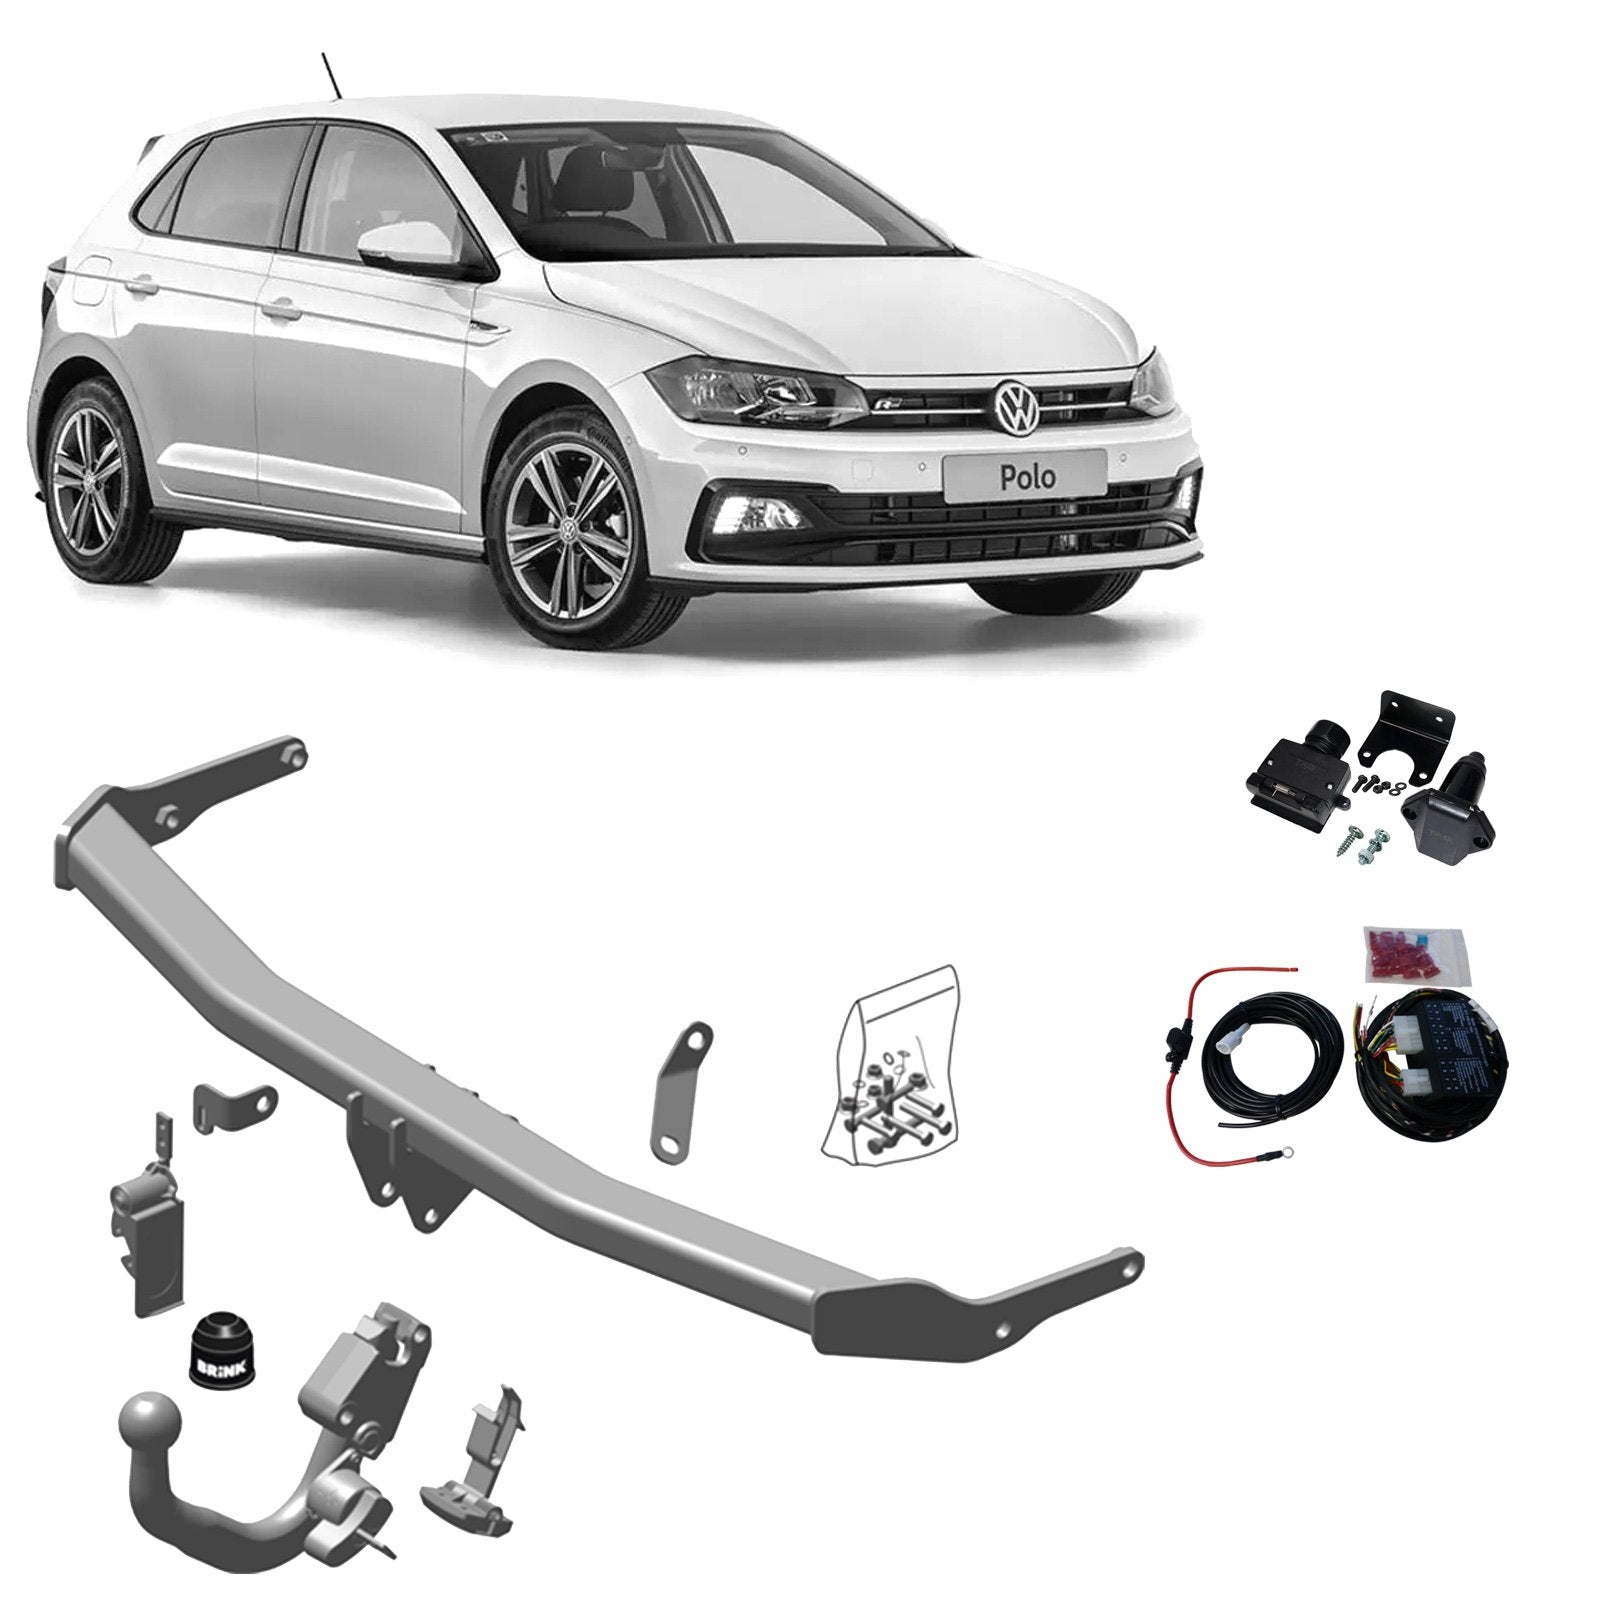 Brink Towbar to suit Seat Ibiza (01/2017 - on), Volkswagen Polo (09/2017 - on)